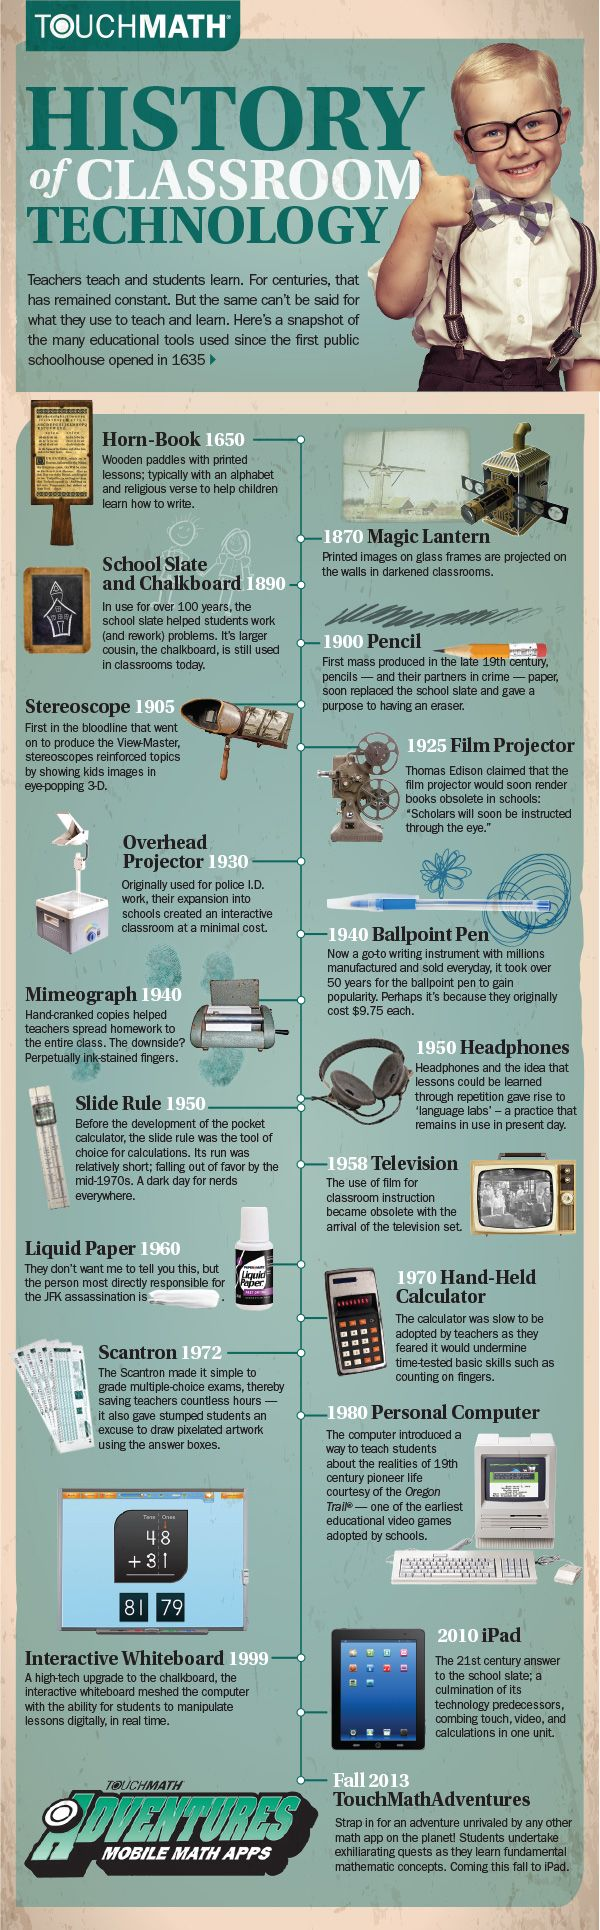 History of Classroom Technology - Wow how times have changed! Some things are missing though like the Document Camera, Internet, and Pinterest? :)